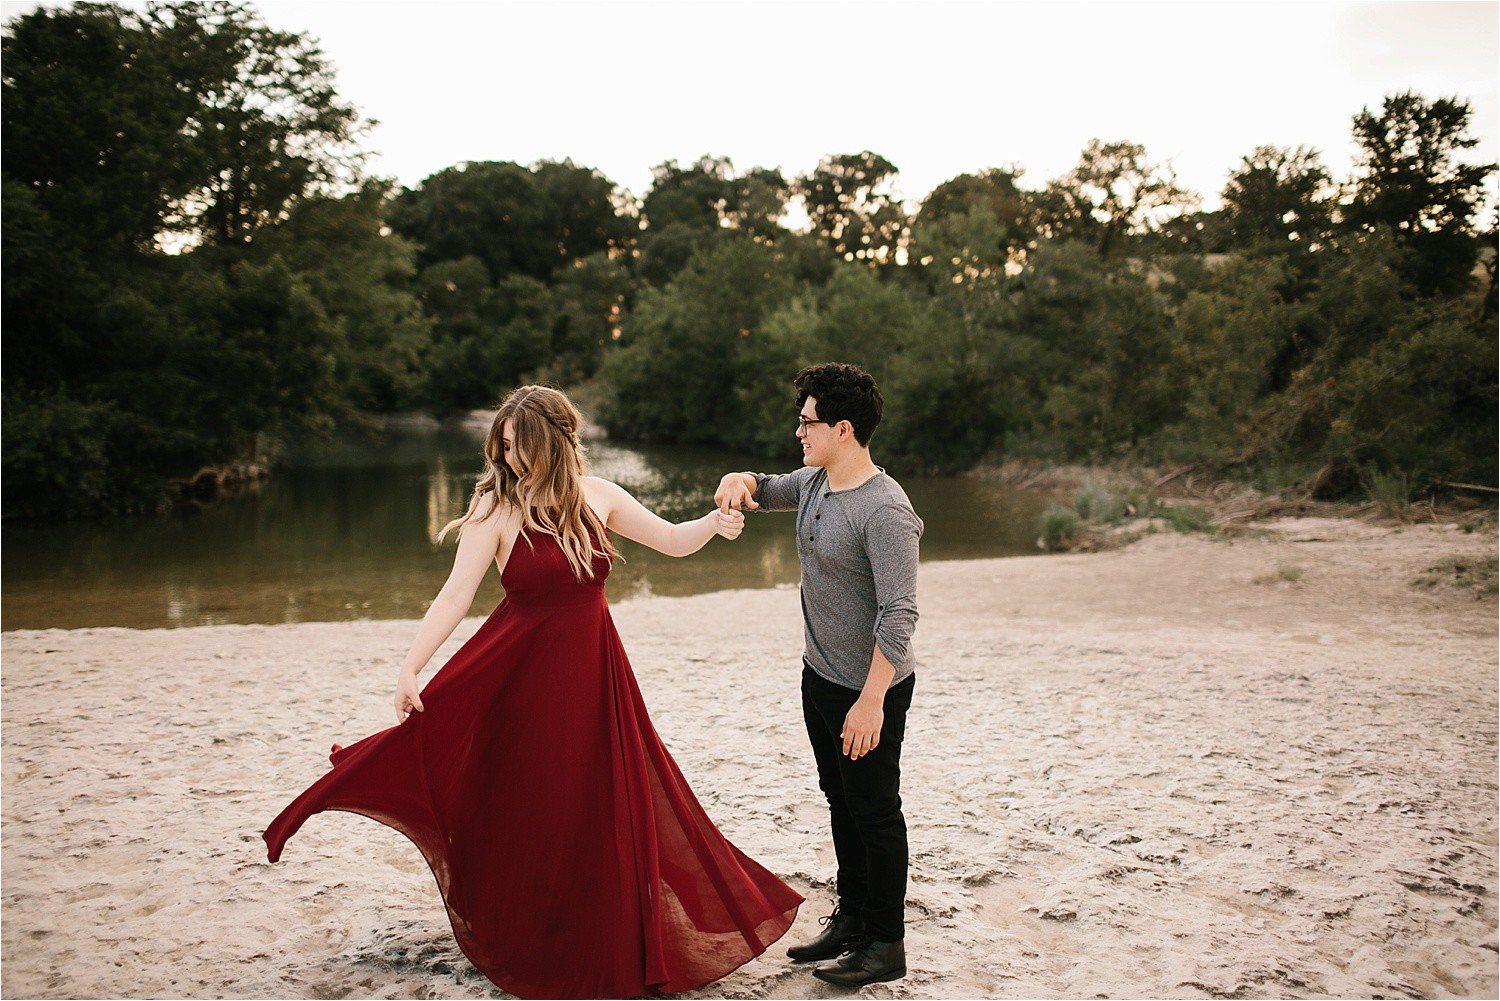 Romantic Austin, Texas Engagement Session with outfit inspiration + flowy red dress from Lulu's at Mckinney Falls State Park by North Texas Wedding Photographer, Rachel Meagan Photography __ 45